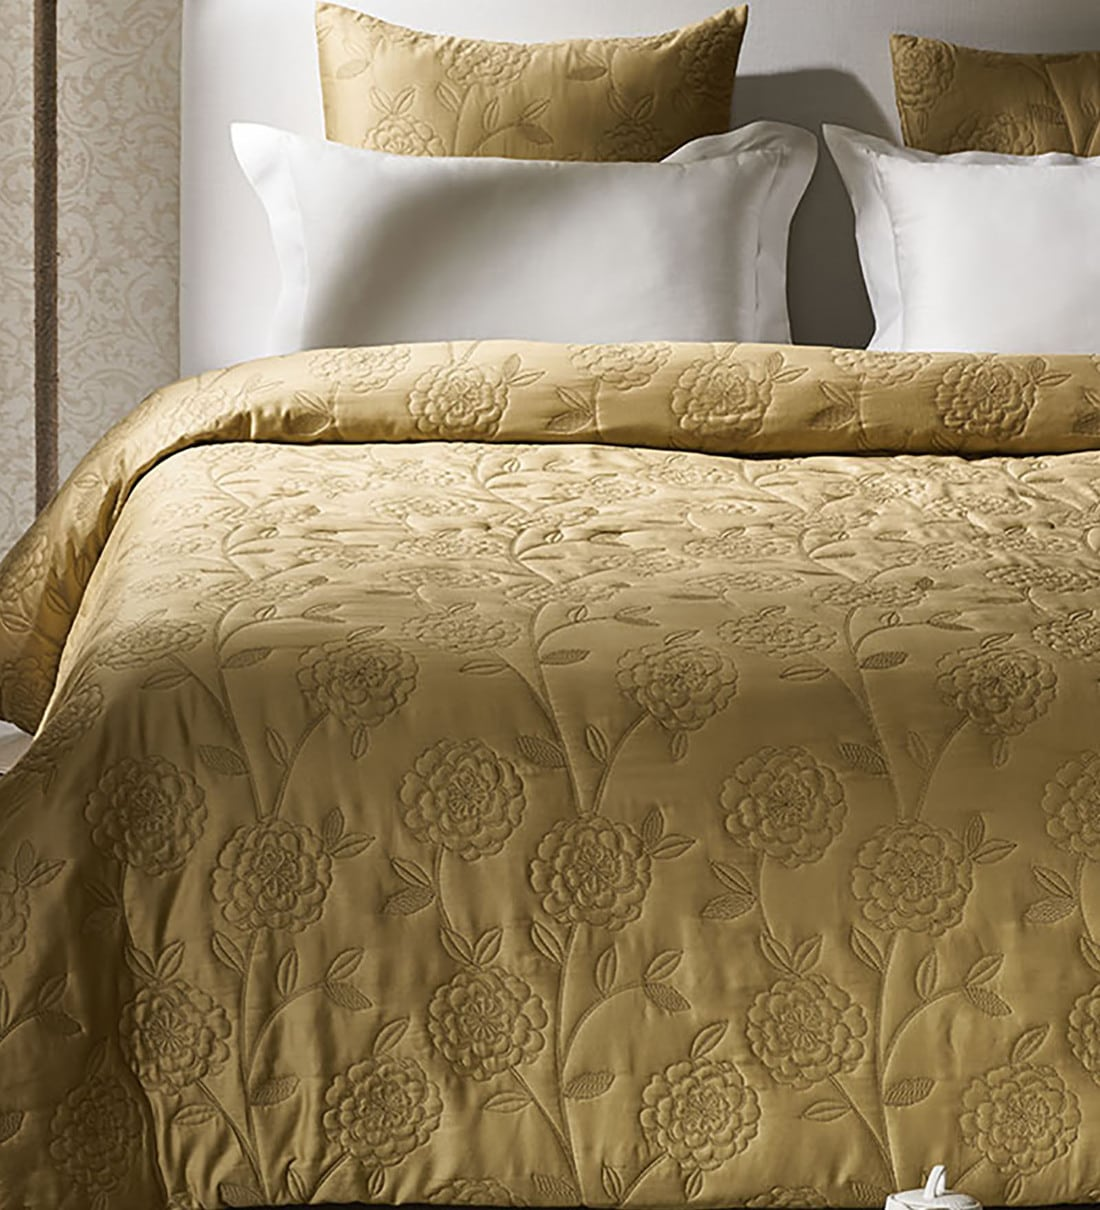 Picture of: Buy Impression Collection Cotton 210 Tc King Size Bed Cover With 2 Sham Covers By Ddecor Live Beautiful Online Double Bed Covers Bed Covers Furnishings Pepperfry Product